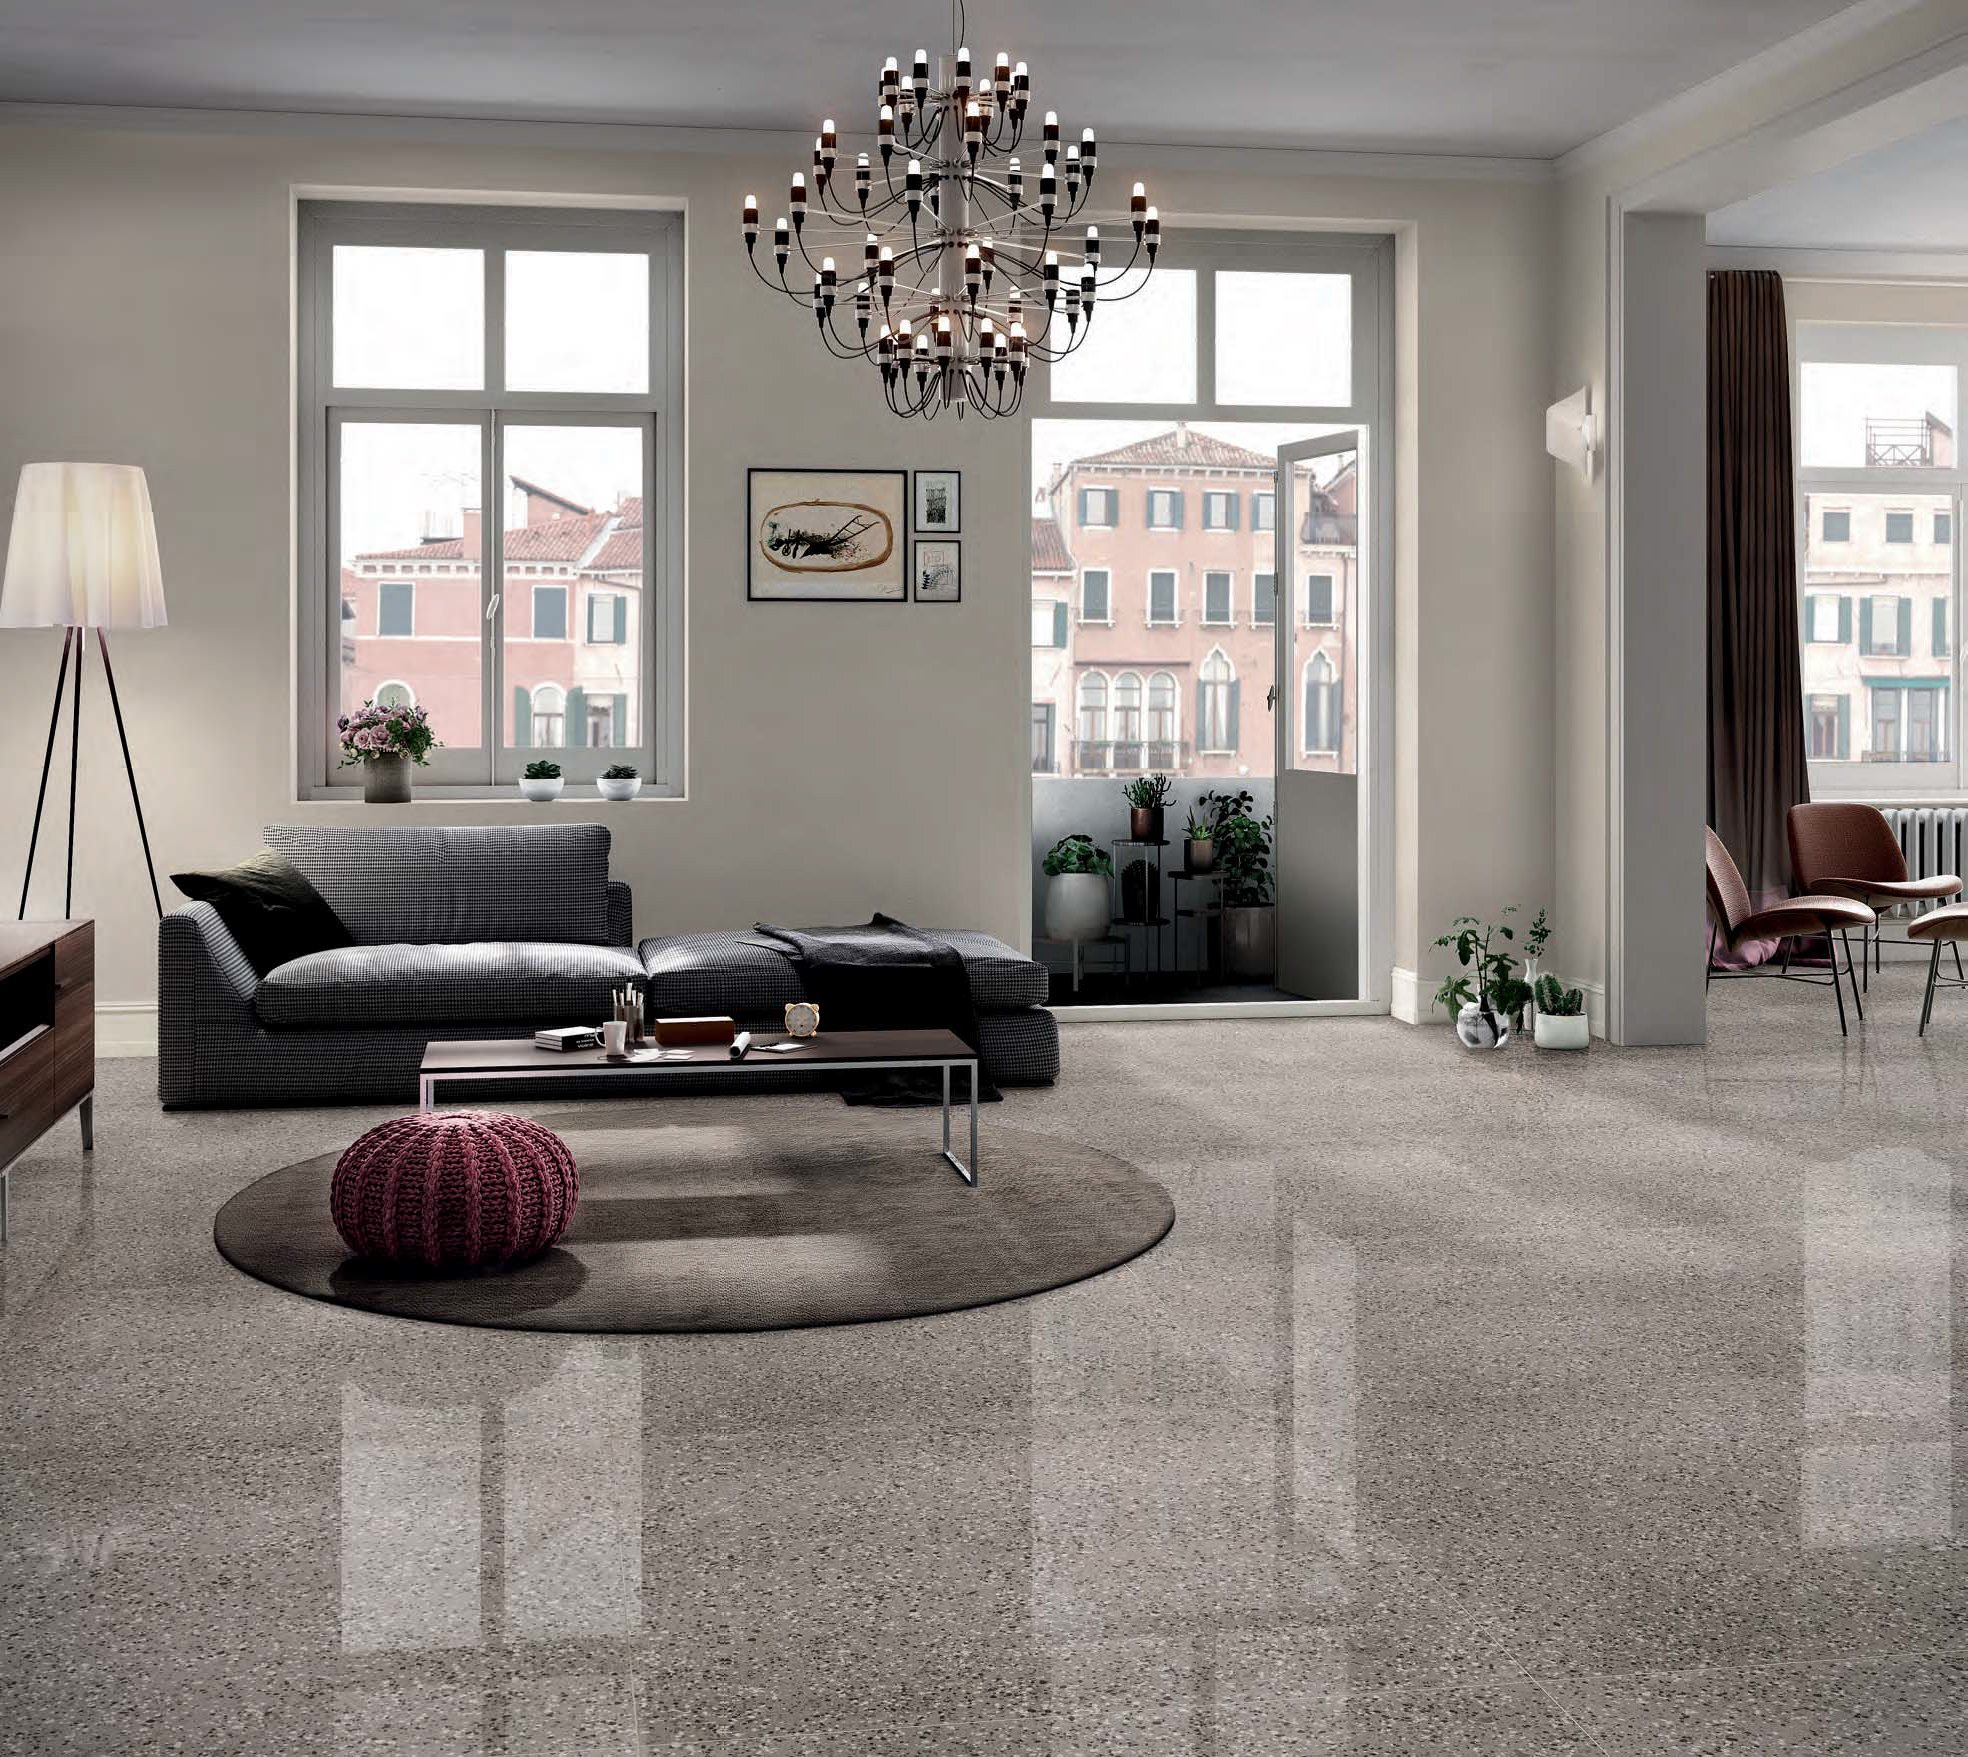 Conglomerate_CON06P_Grey_Polished_1200x1200_Living [1].jpg